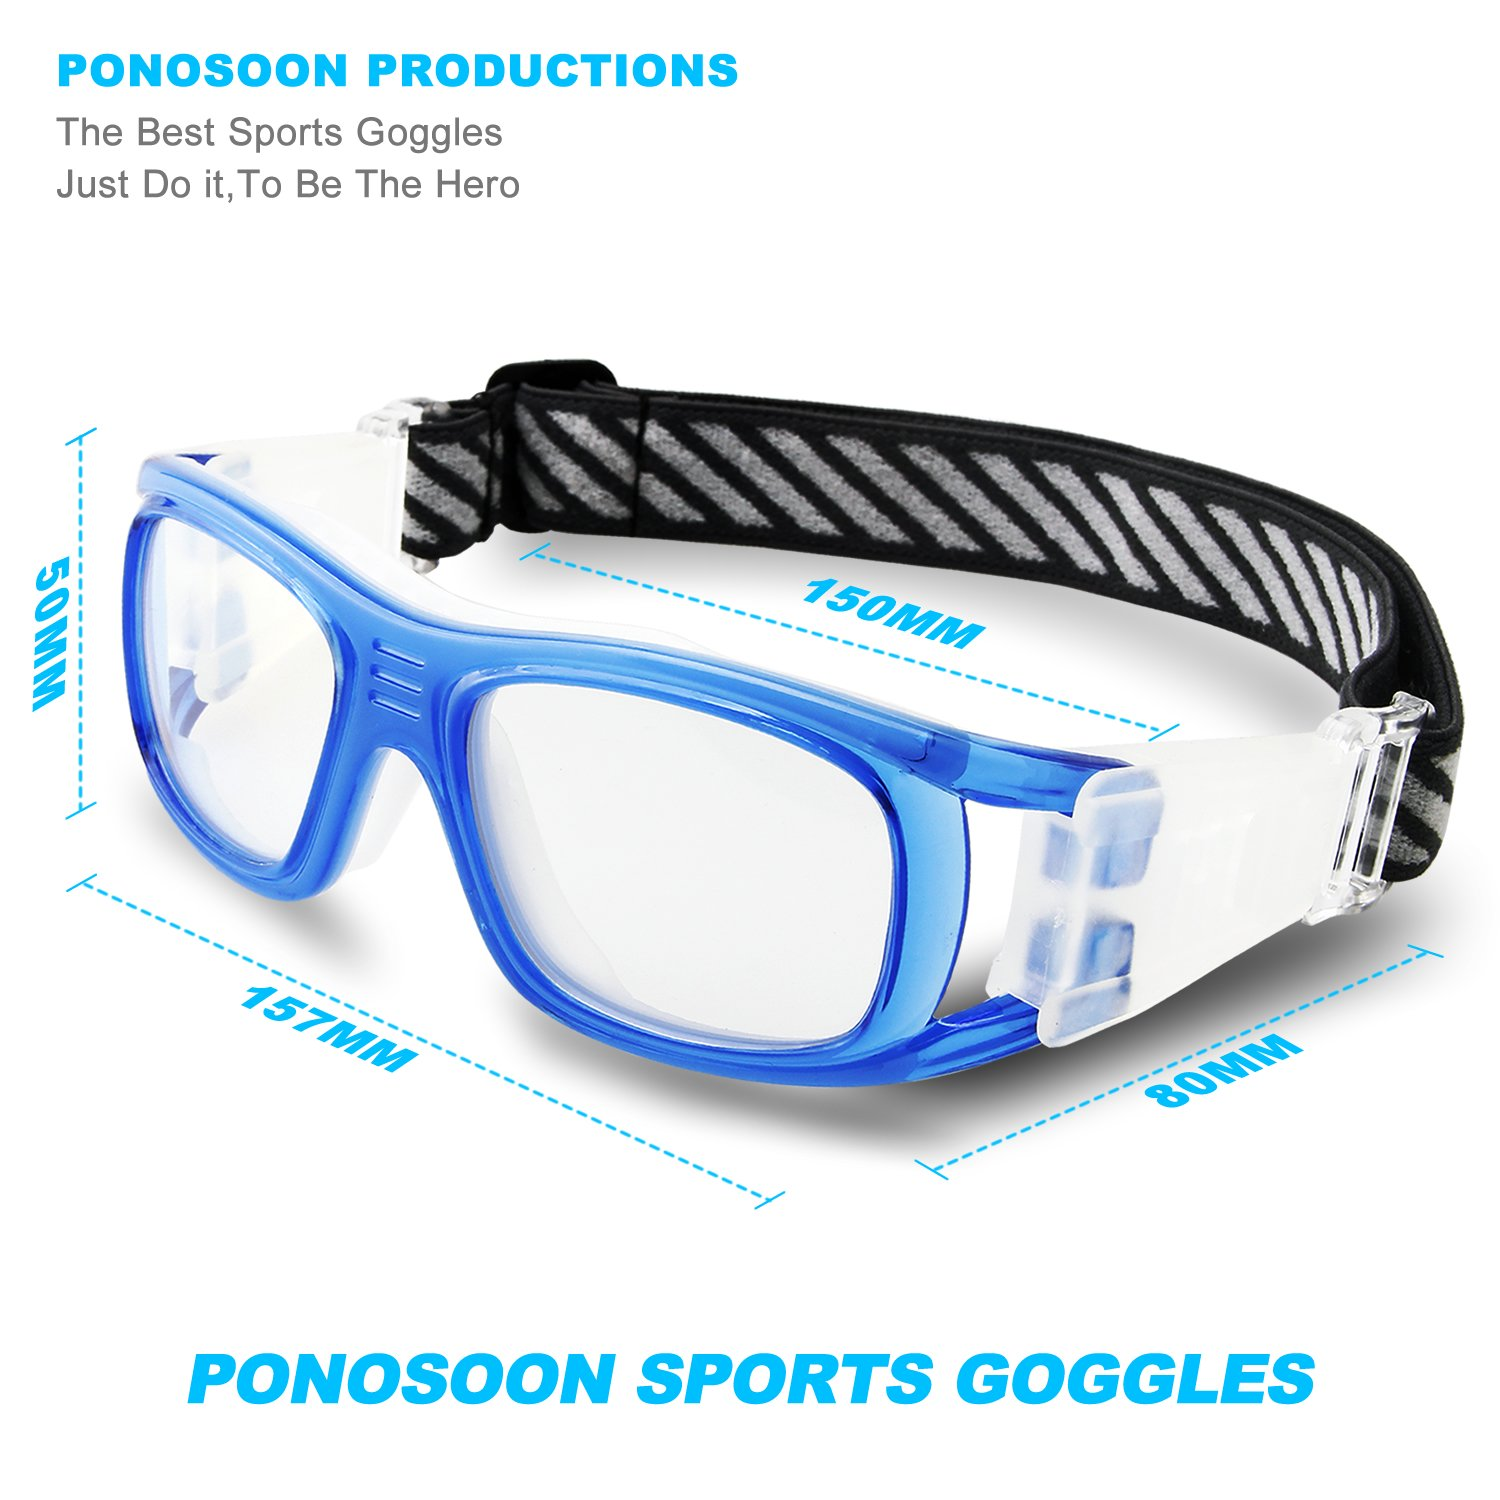 0fcc93d9def PONOSOON Sports Goggles Glasses for Basketball Football Volleyball Hockey  1809(Transparent Blue)  Amazon.ca  Sports   Outdoors